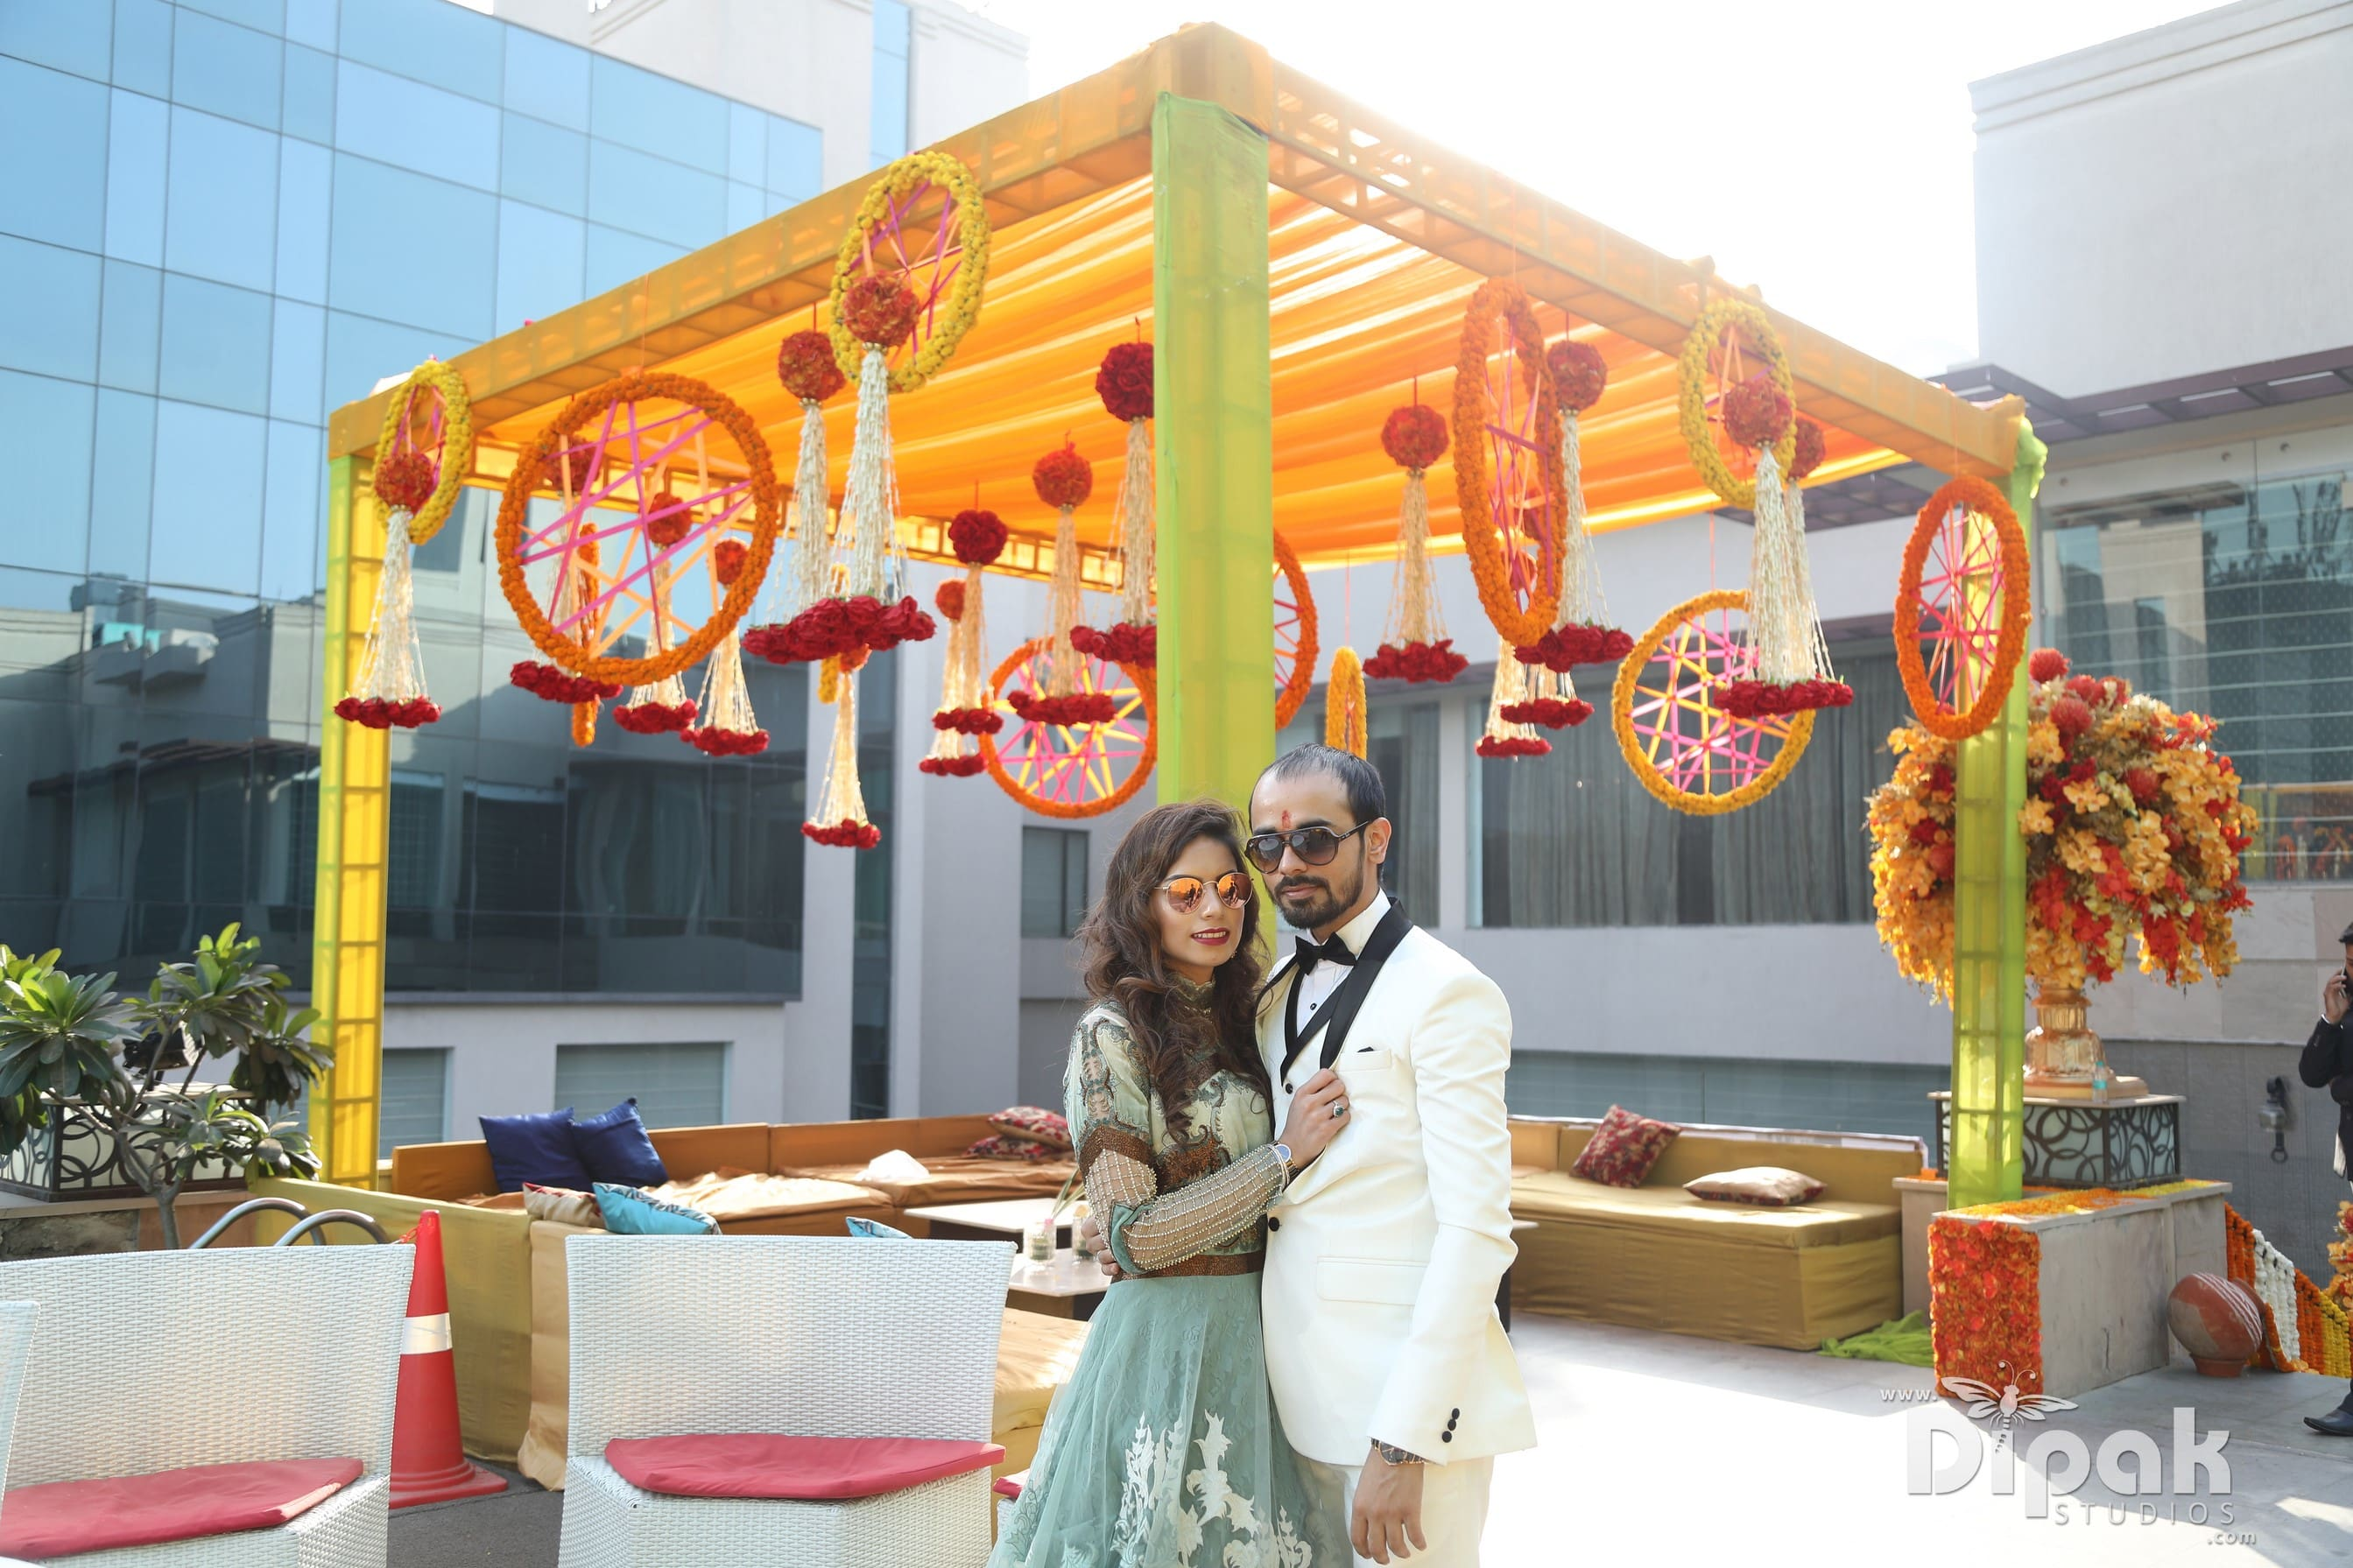 isha & tushar!:orana hotels and resorts, dipak studios wedding photography